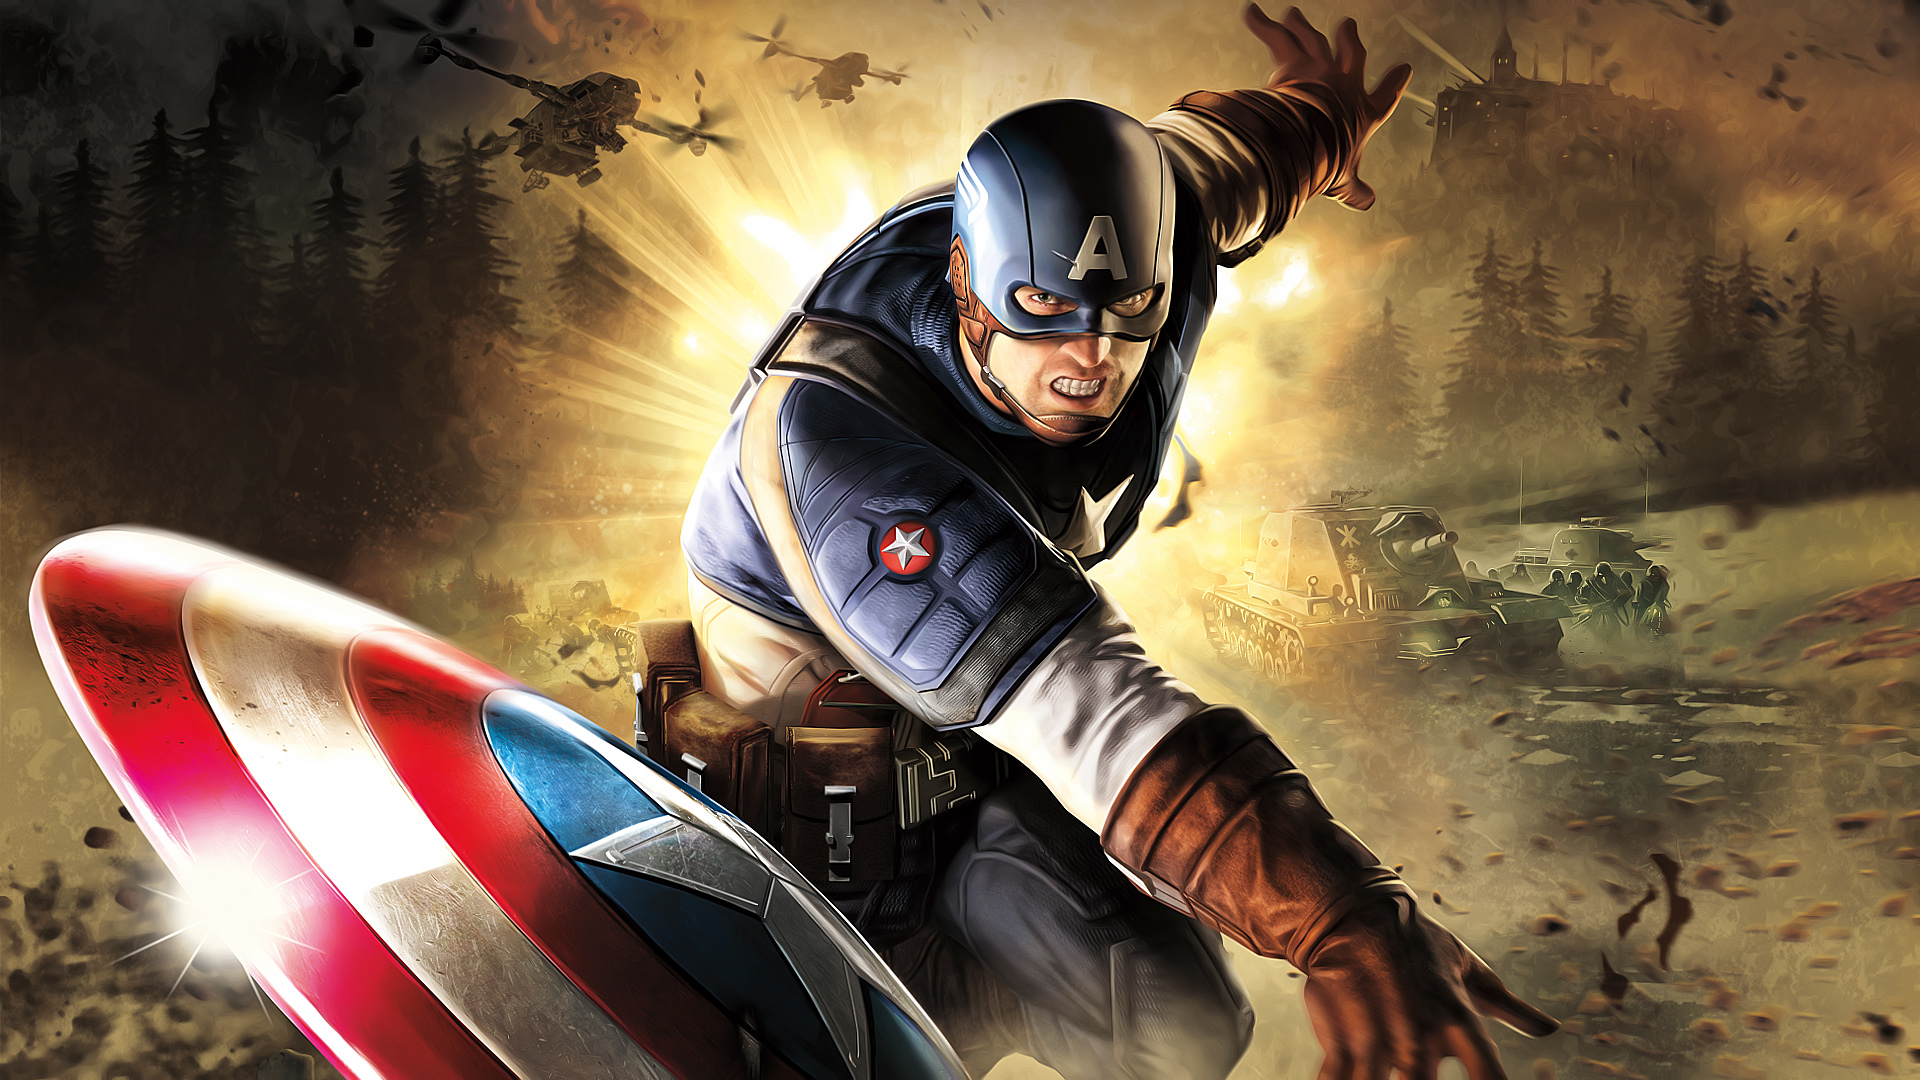 Captain america for background wallpaper High Quality Wallpapers 1920x1080